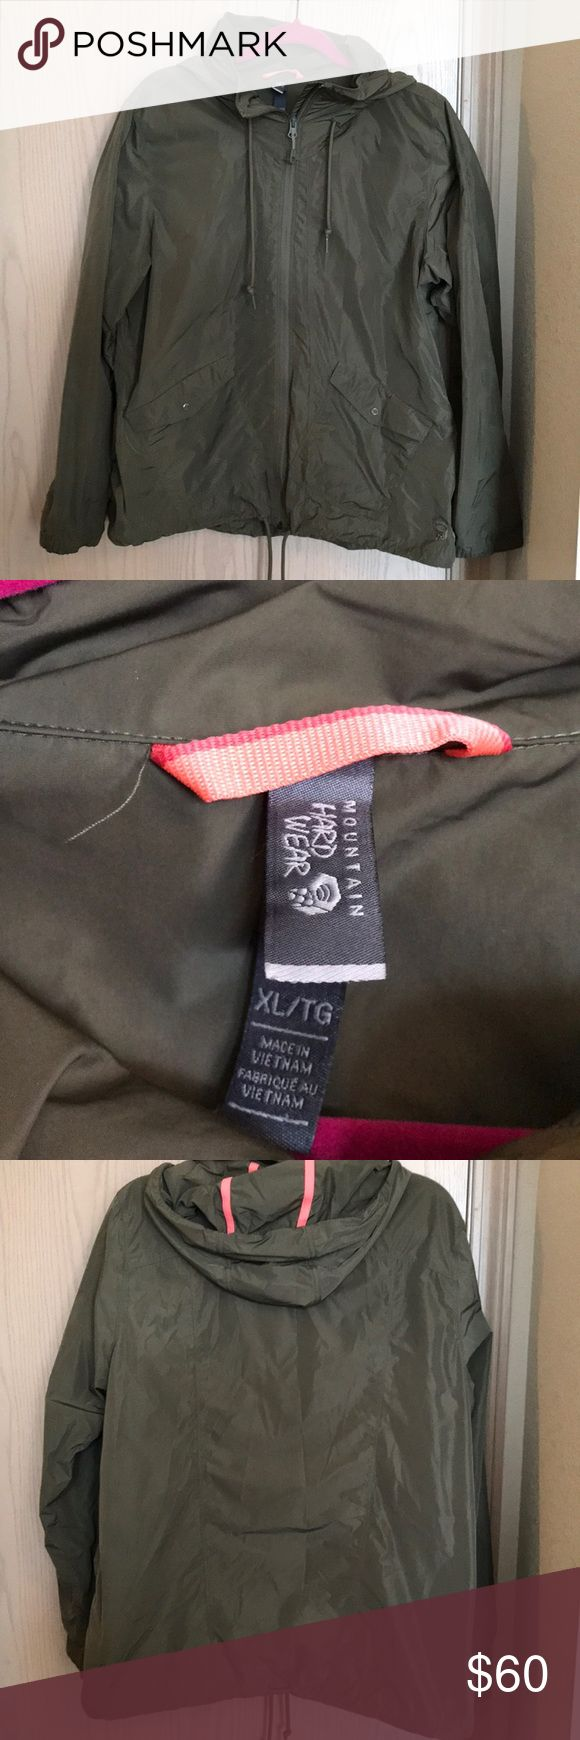 Mountain hardwear rain jacket Mountain hardwear jacket for rain and wind protection. Has been worn but in good condition. Great color and has drawstrings to pull in closer. The hood can be zipped back up if not in use. Has a pink/salmon color accents but subtle. Mountain Hardwear Jackets & Coats